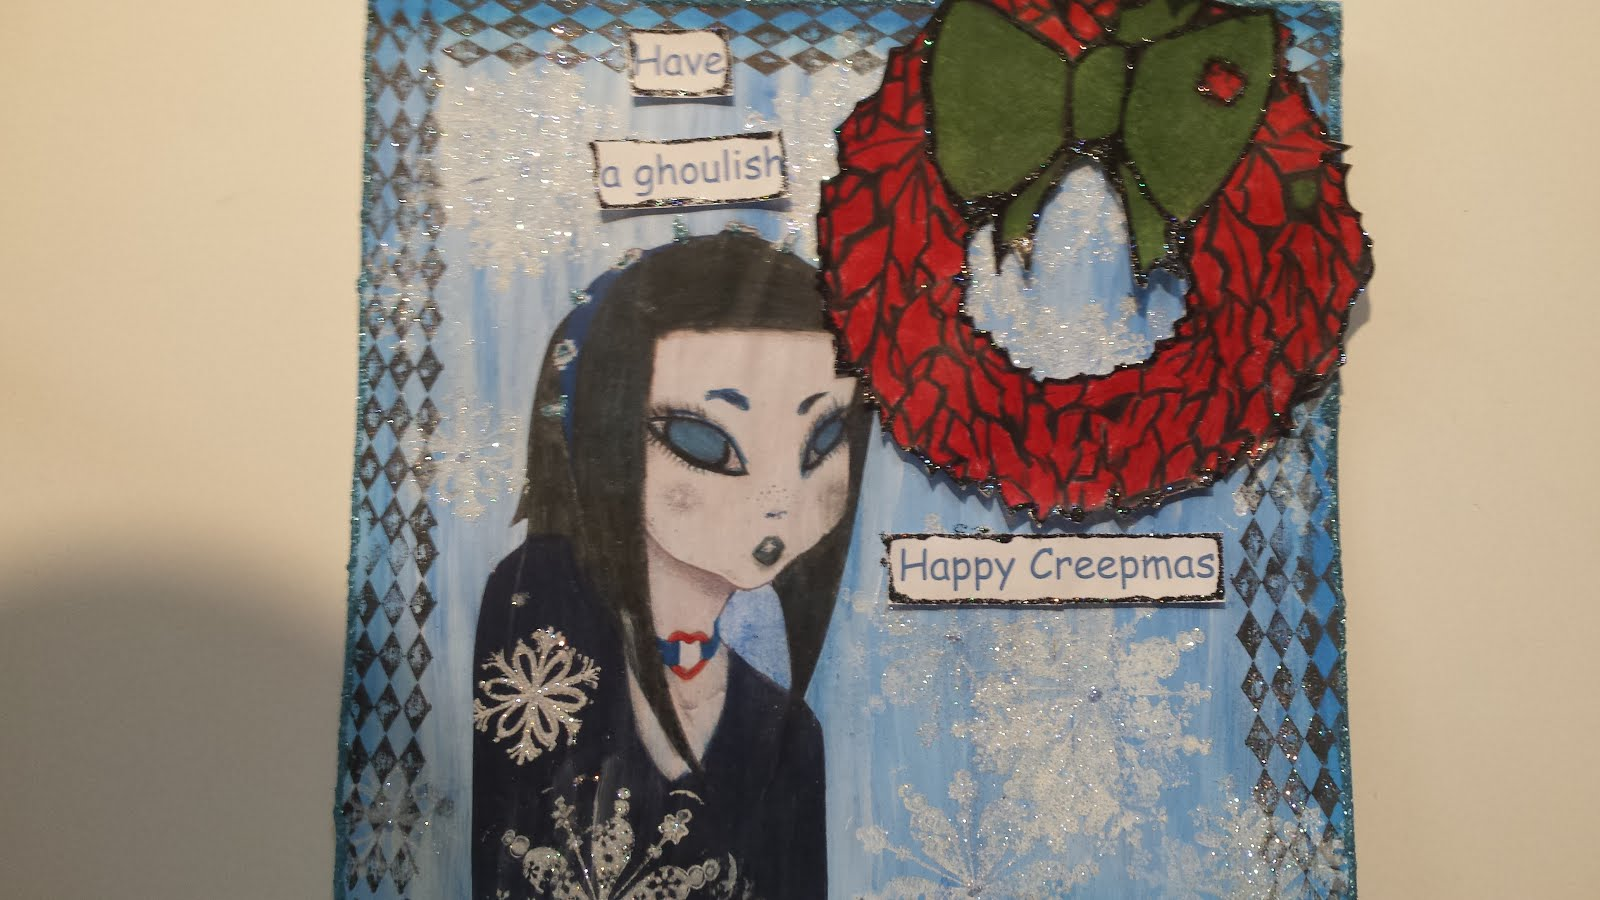 Day 6 of Smeared Inks 12 Days of Creepmas Blog Hop